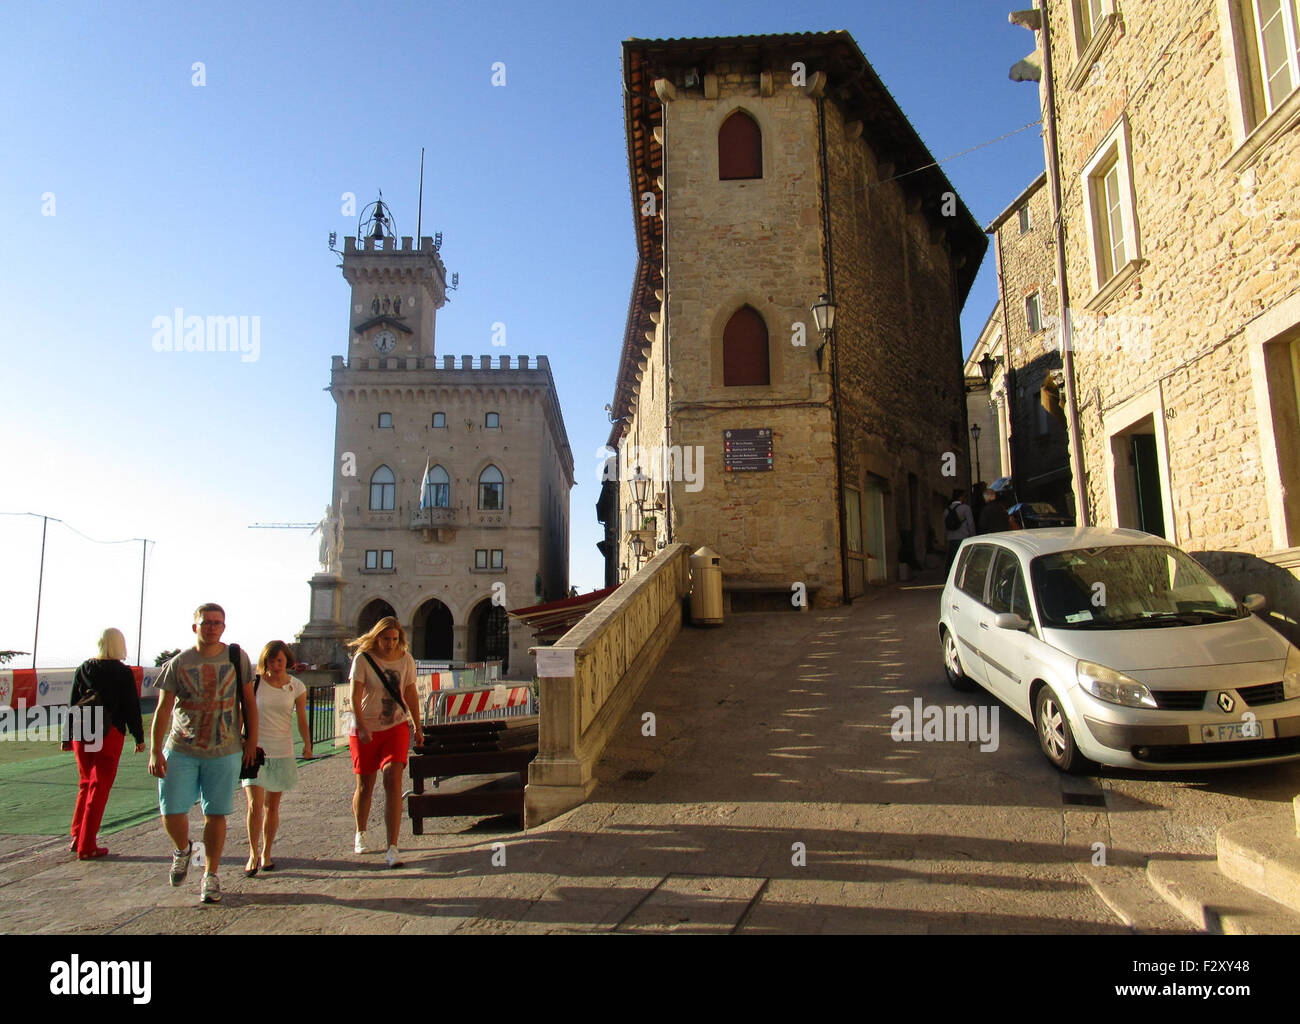 Tourists walk around the Piazza Liberta in the centre of San Marino, with the government palace pictured back left, - Stock Image